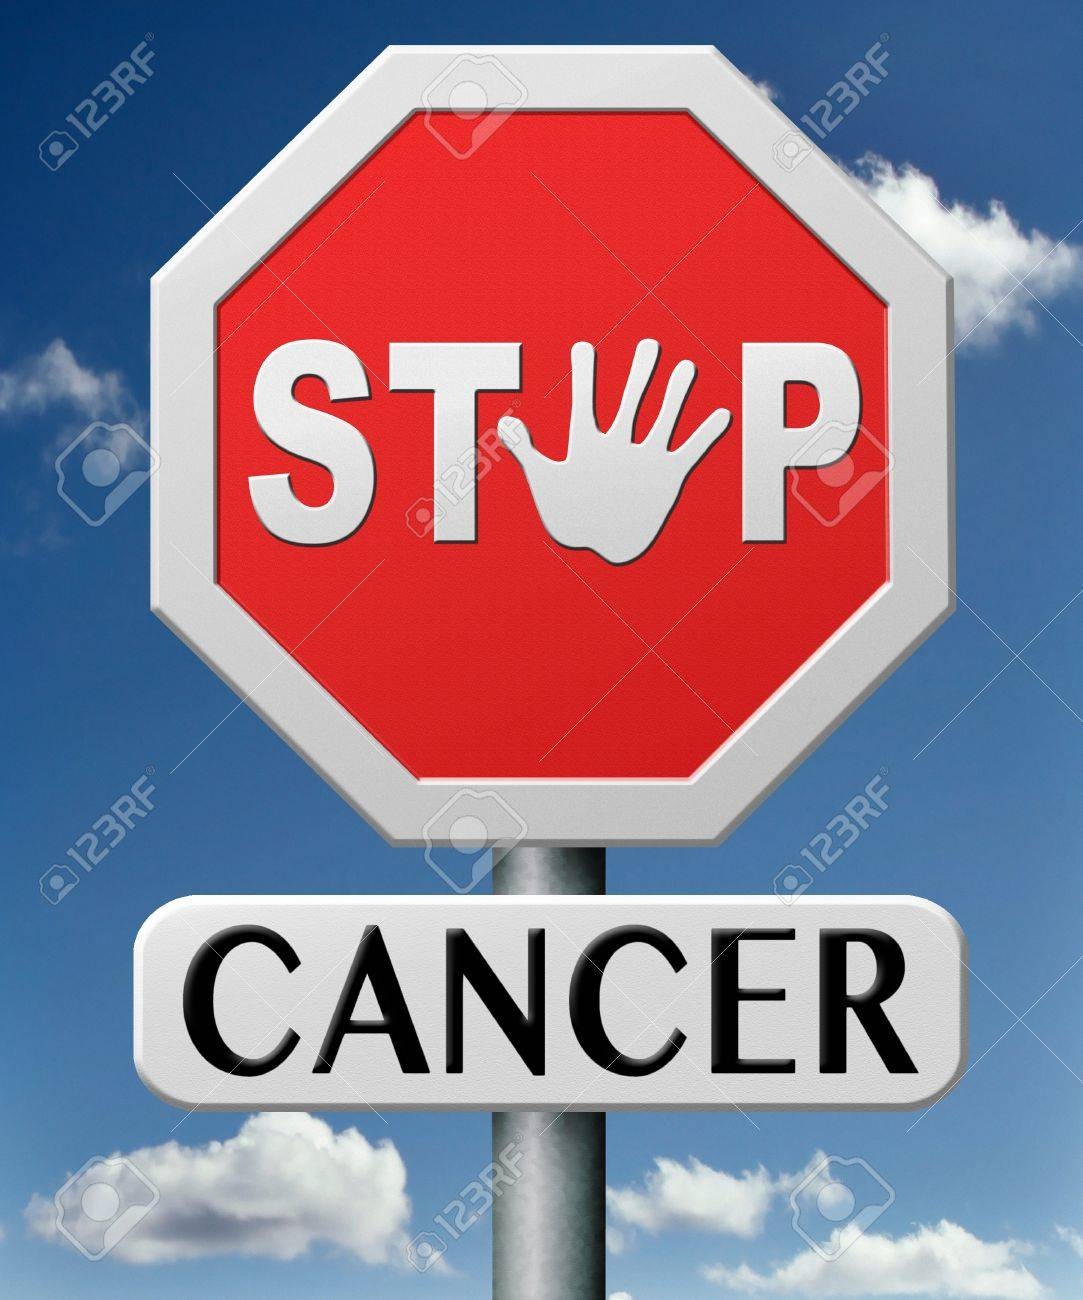 stop cancer by prevention and early diagnosis improve treatment prevent and find causes lung breast prostate liver cancers Stock Photo - 17463077